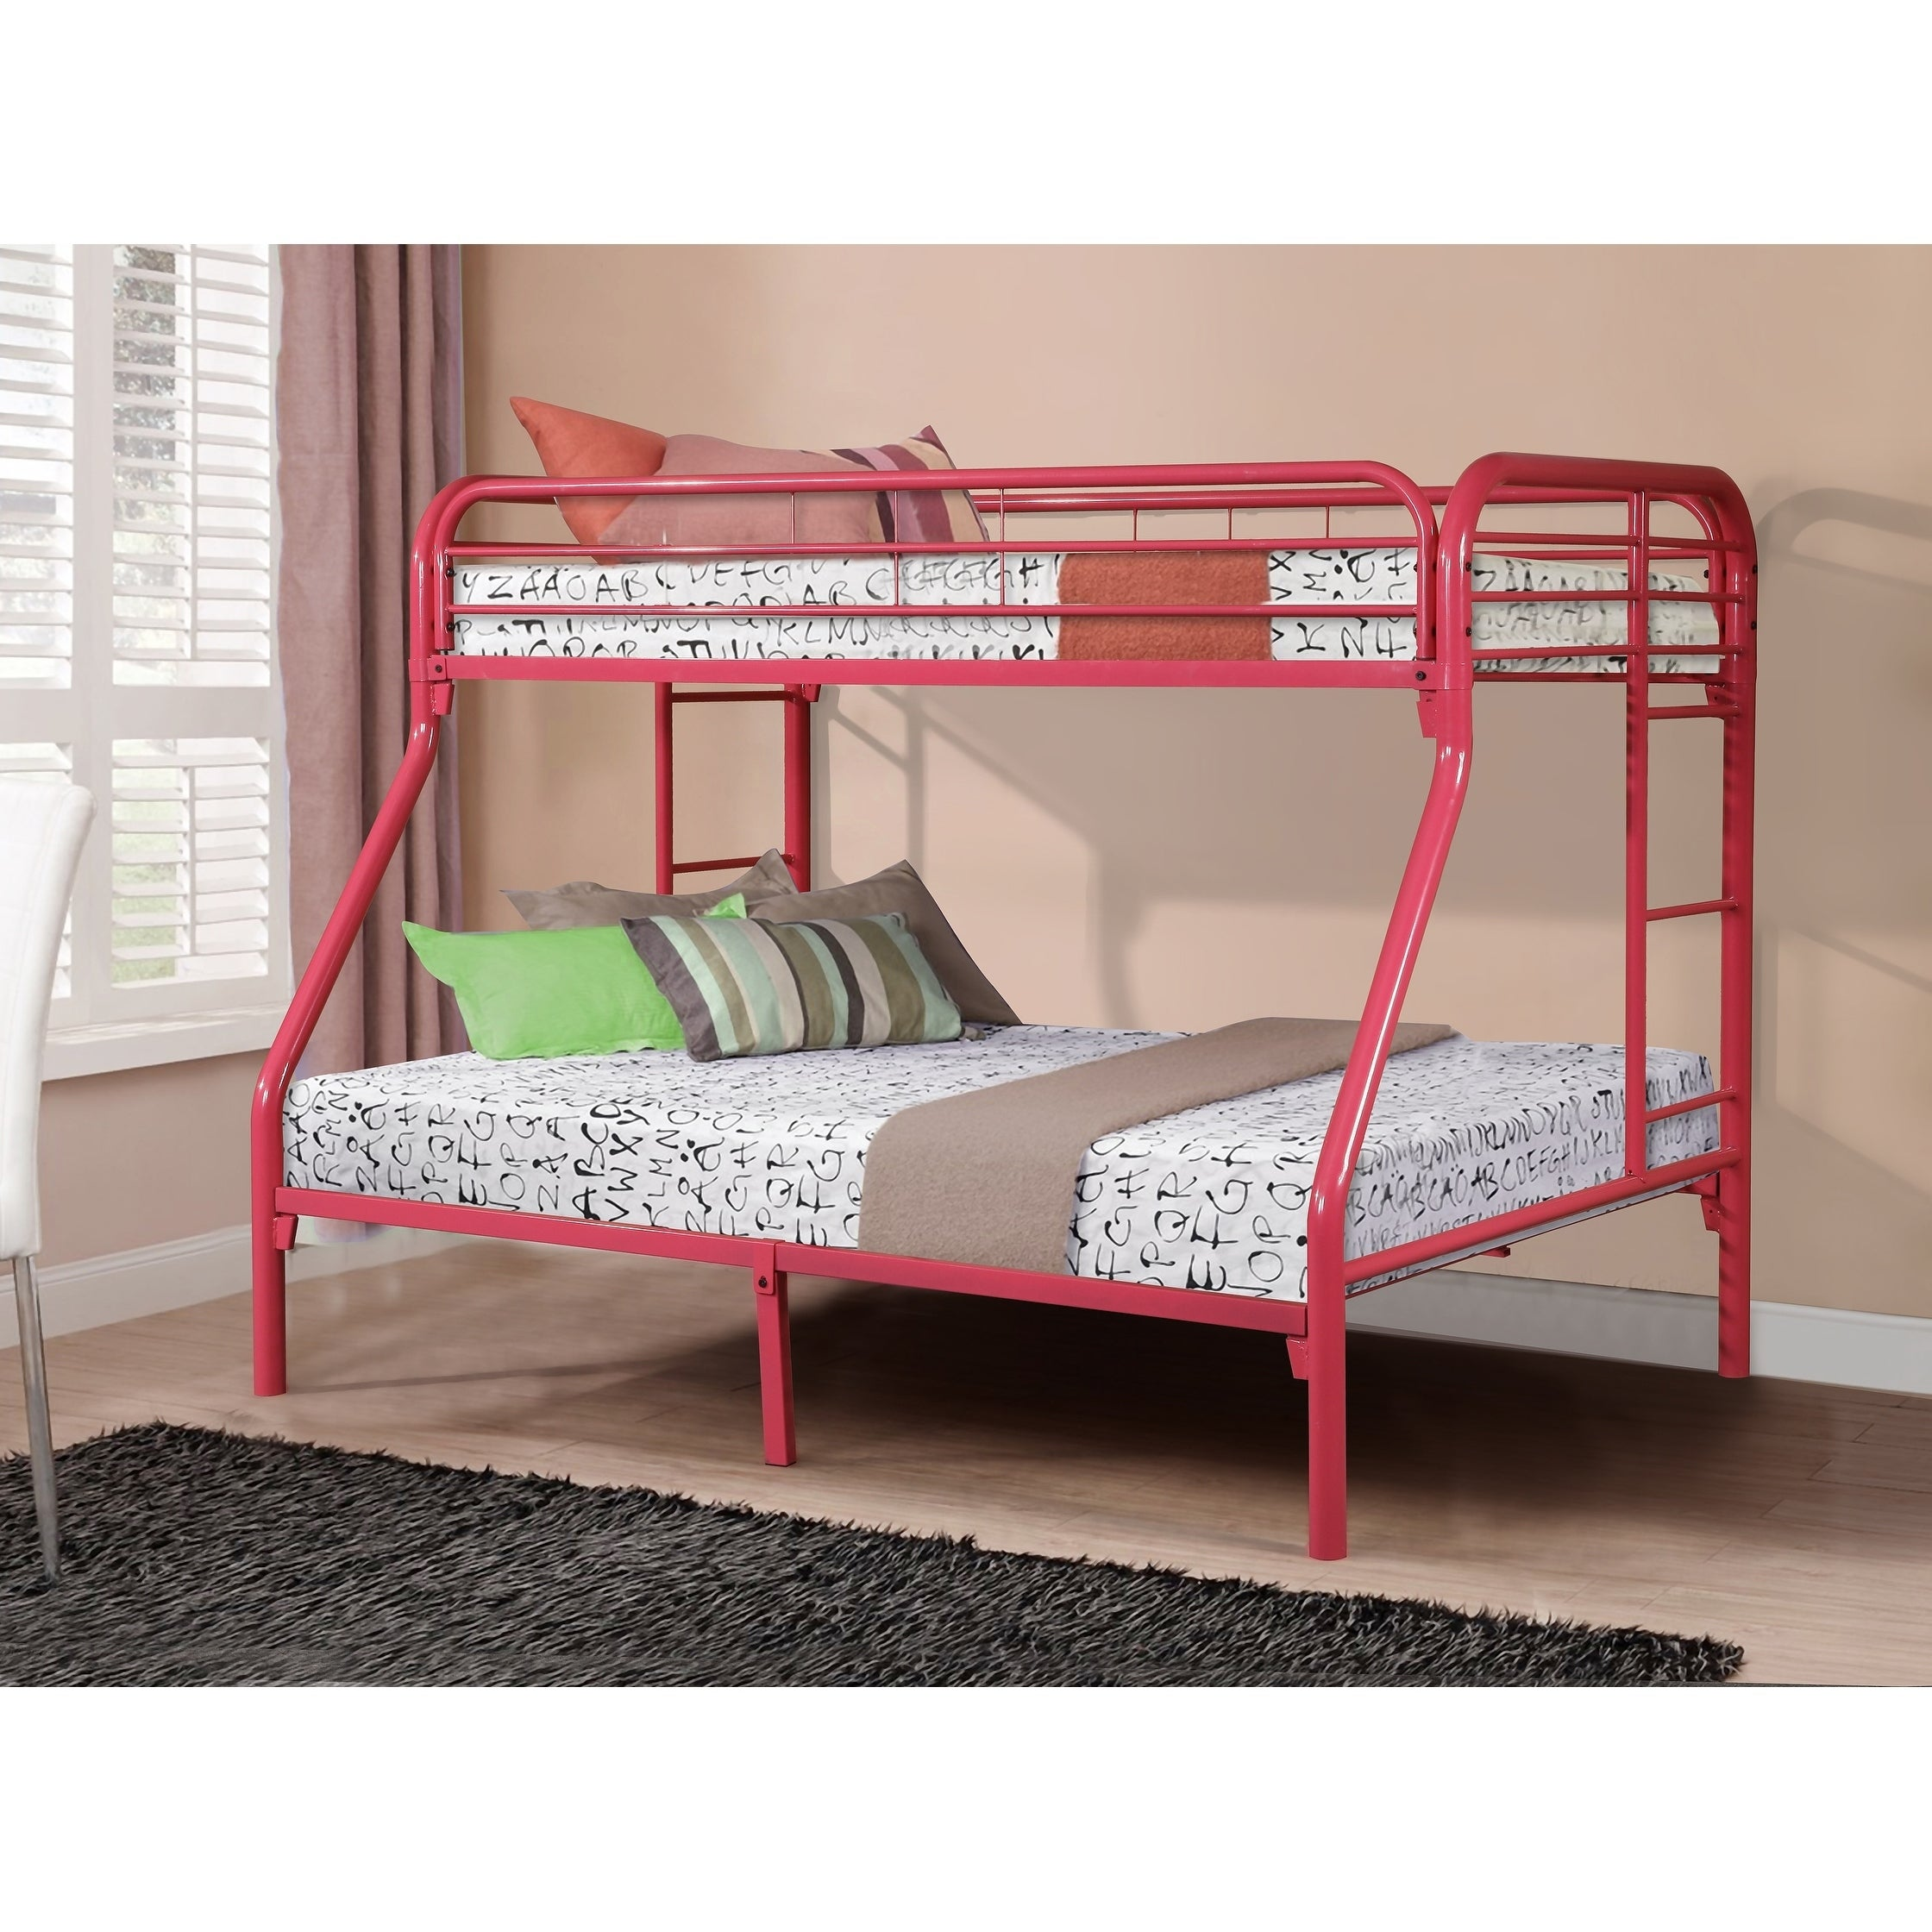 Shop Twin Over Full Metal Bunk Bed On Sale Overstock 17375264